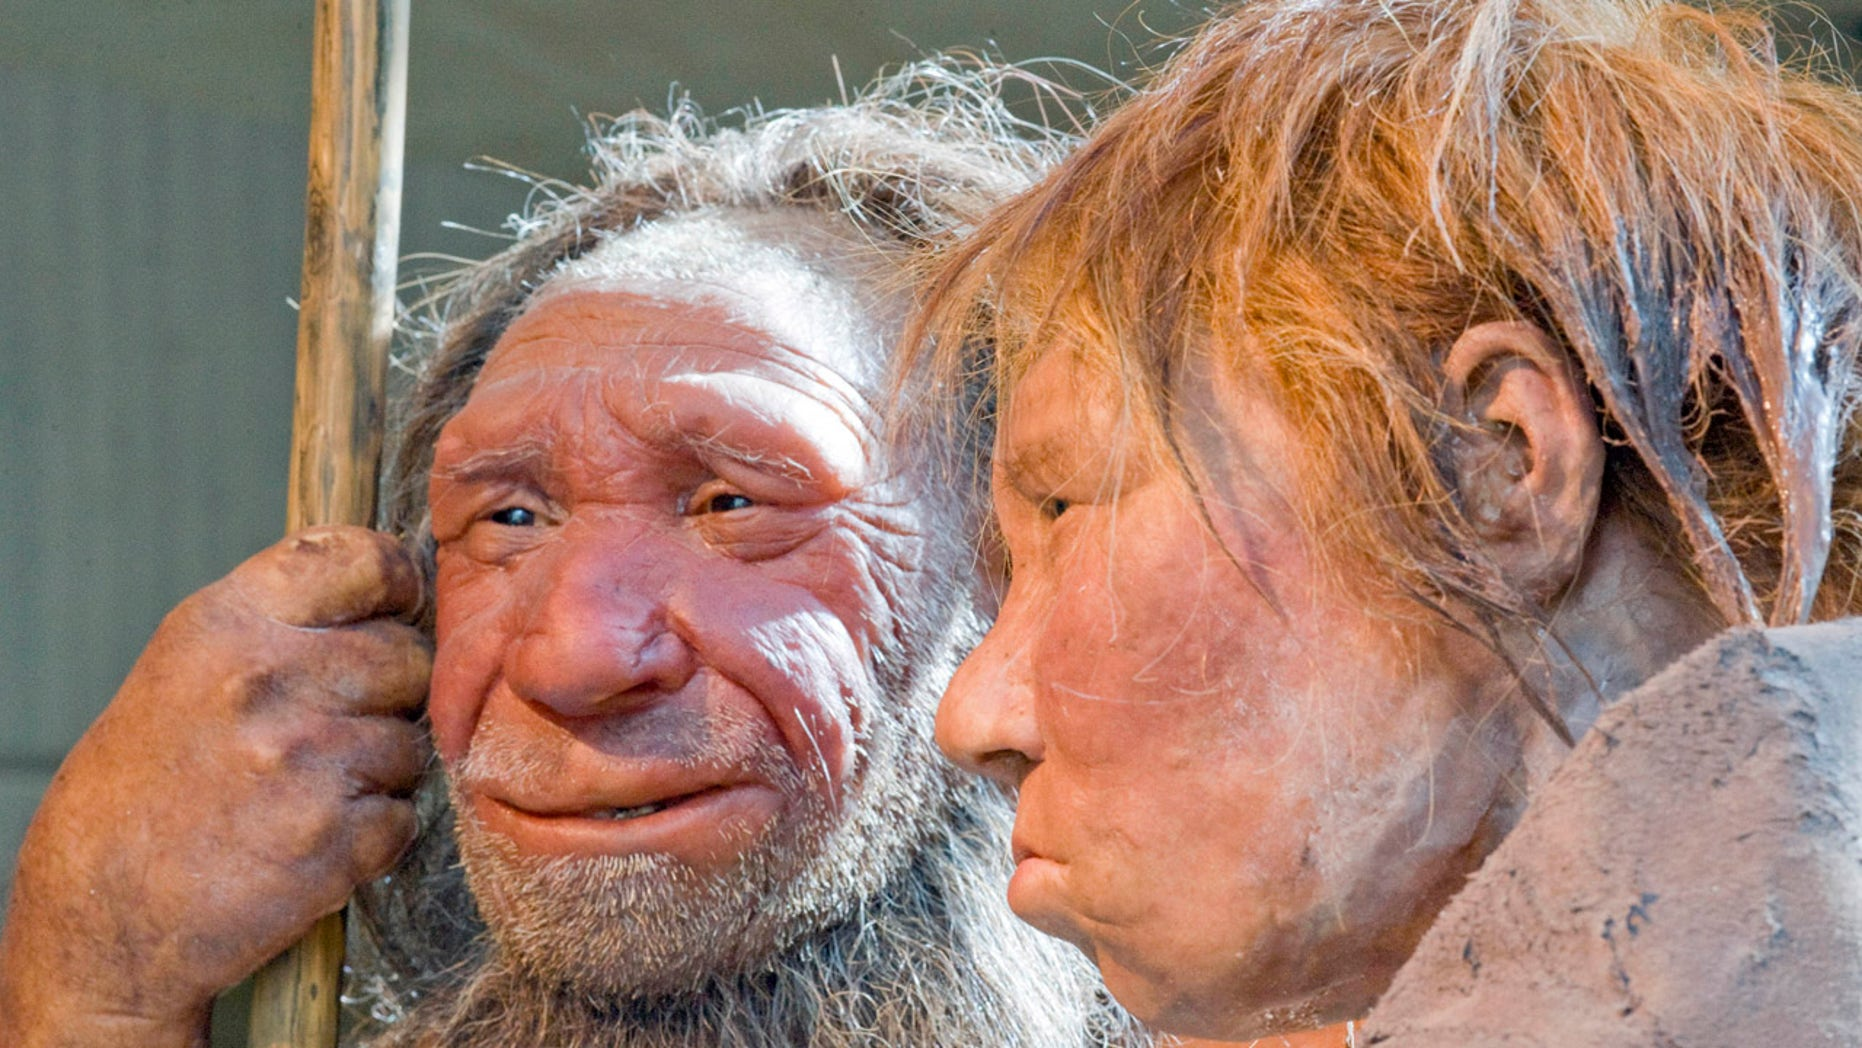 FILE - This Friday, March 20, 2009 file photo shows reconstructions of a Neanderthal man, left, and woman at the Neanderthal museum in Mettmann, Germany. (AP Photo/Martin Meissner)